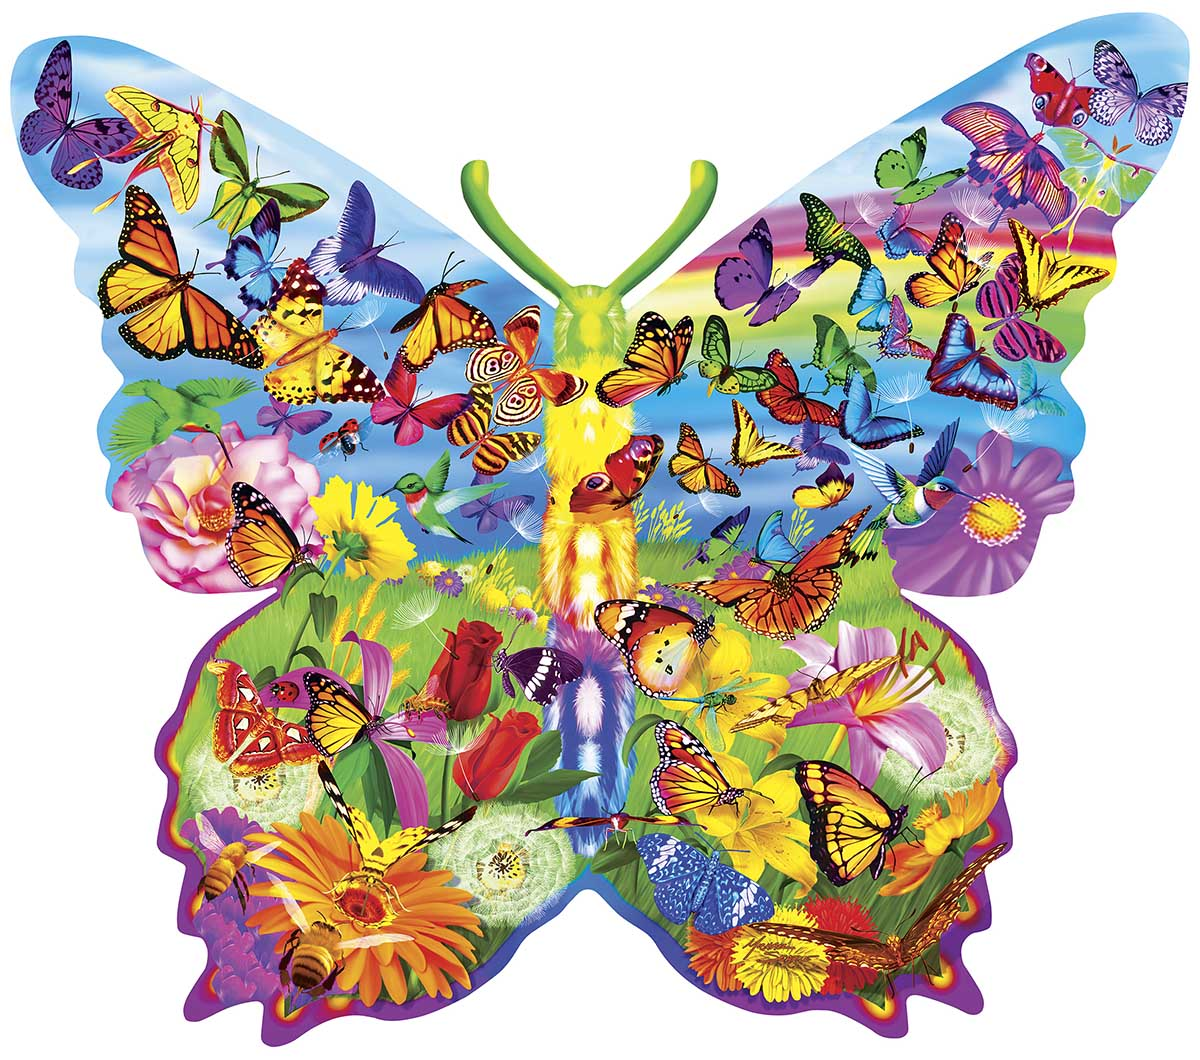 Butterfly Butterflies and Insects Shaped Puzzle